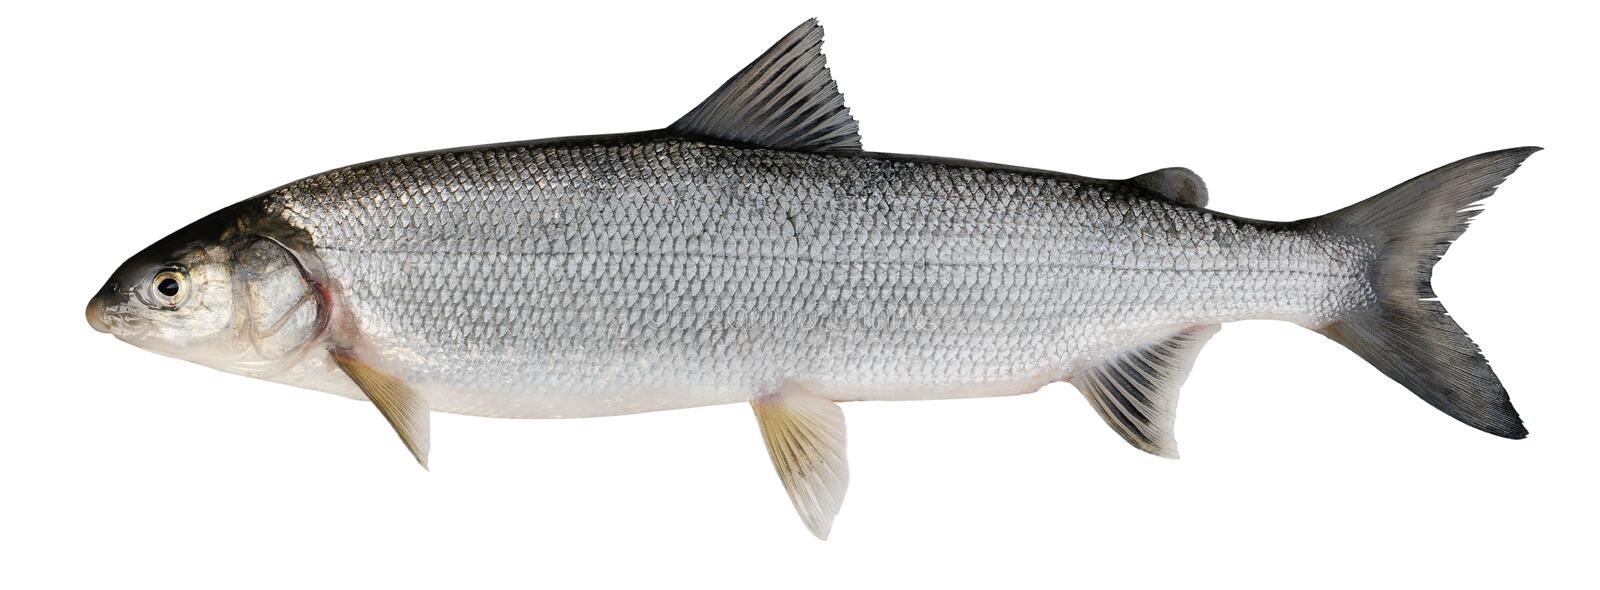 Whitefish ( Coregonus lavaretus ) royalty free stock photography